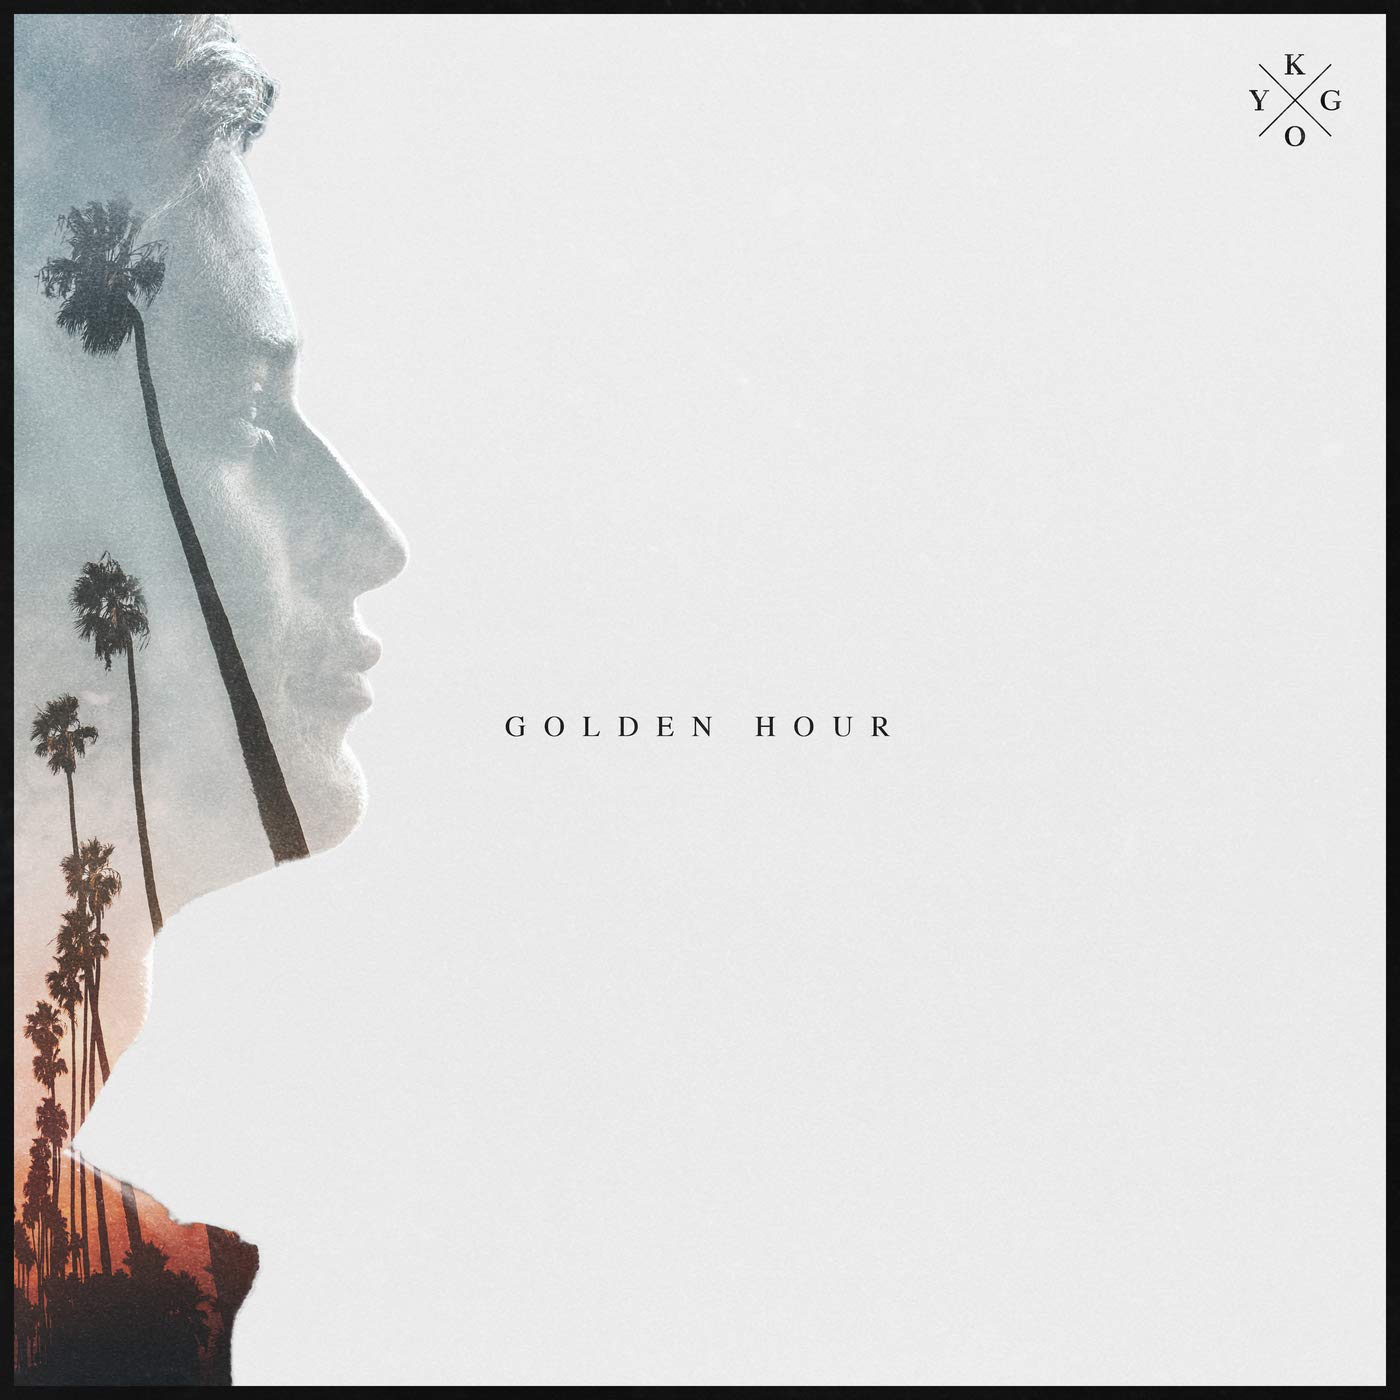 Kygo & Haux - Golden Hour (2020) [FLAC] Download